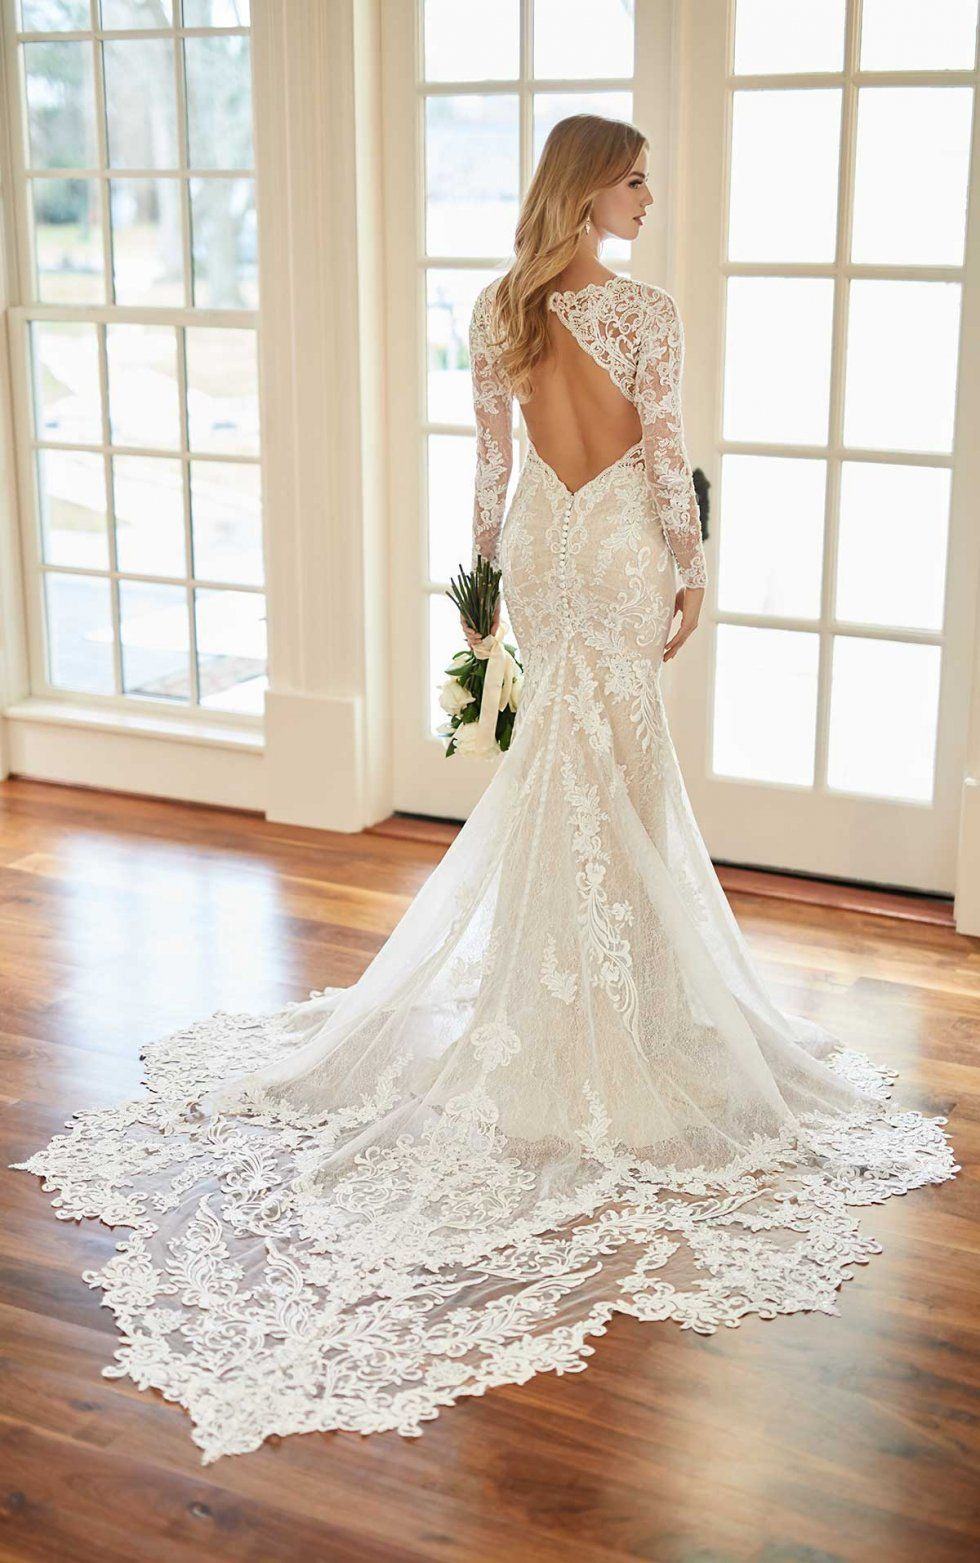 Vintage Inspired Wedding Gown With Scalloped Train Martina Liana Wedding Dress Long Sleeve Martina Liana Wedding Dress Vintage Inspired Wedding Gown [ 1563 x 980 Pixel ]